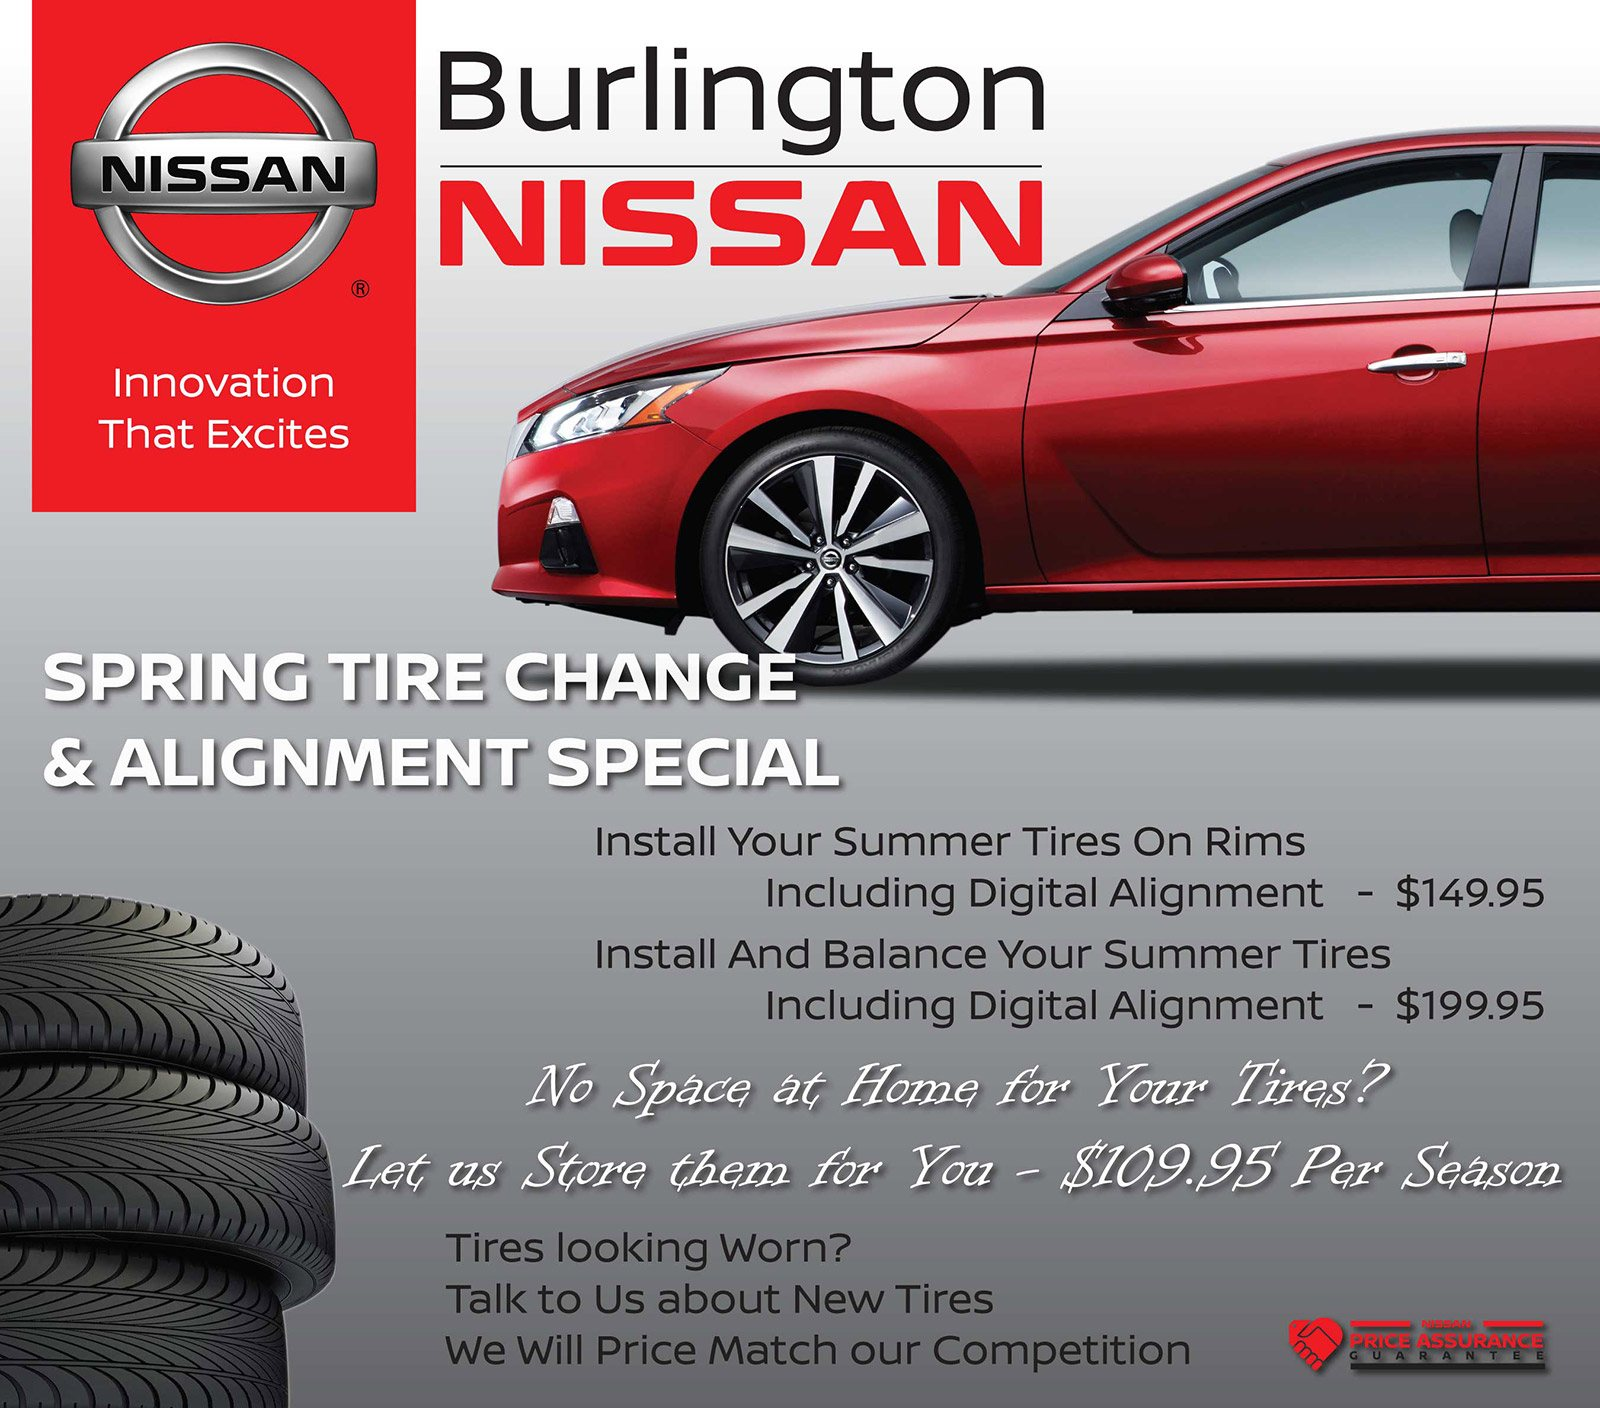 Spring Tire Change & Alignment Special